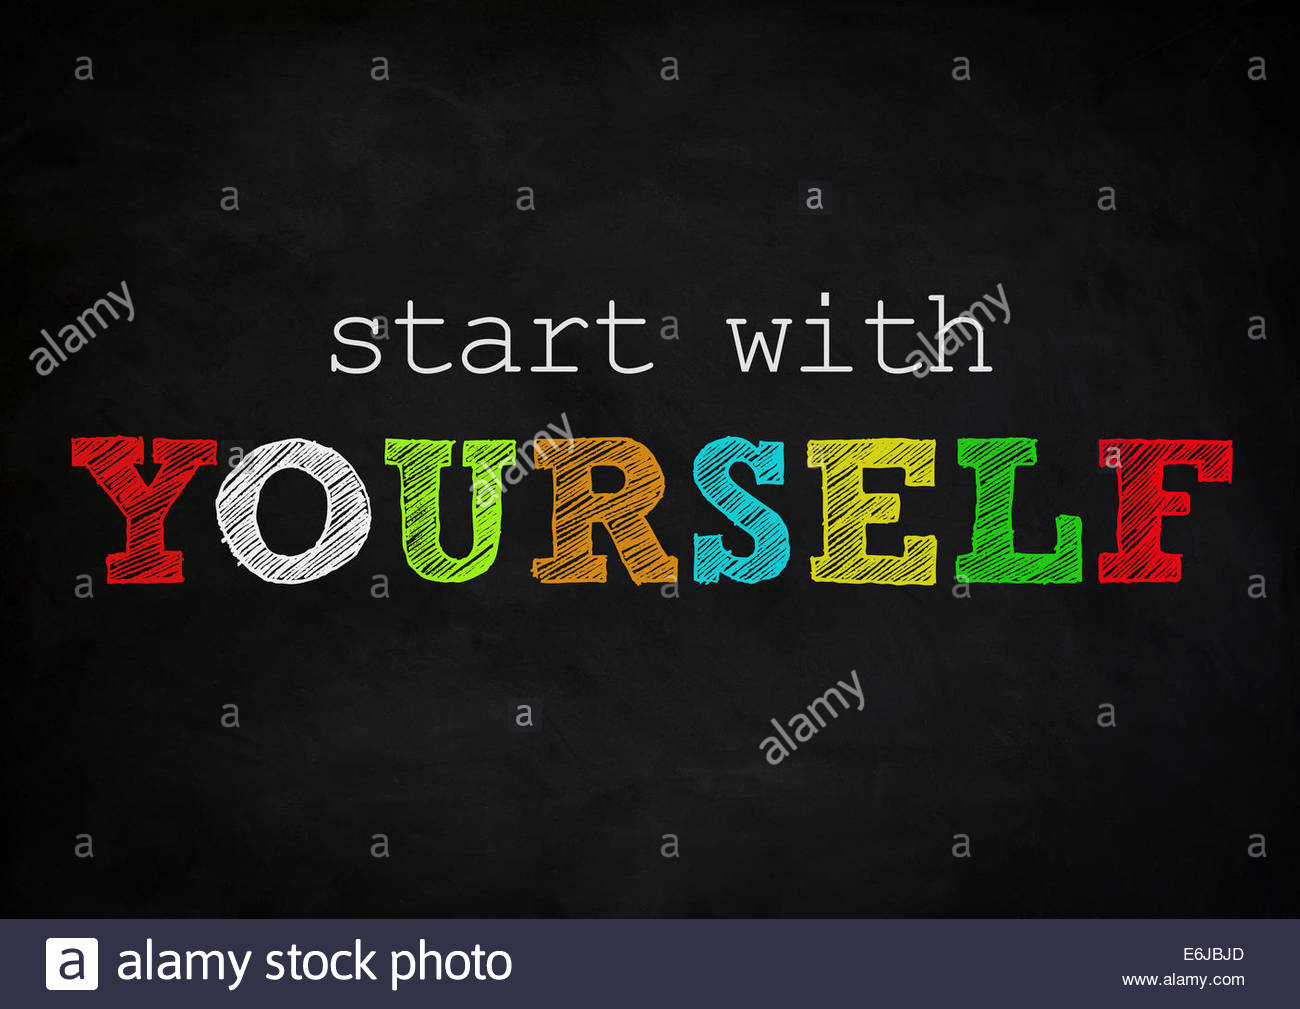 start with yourself - chalkboard concept - Stock Image